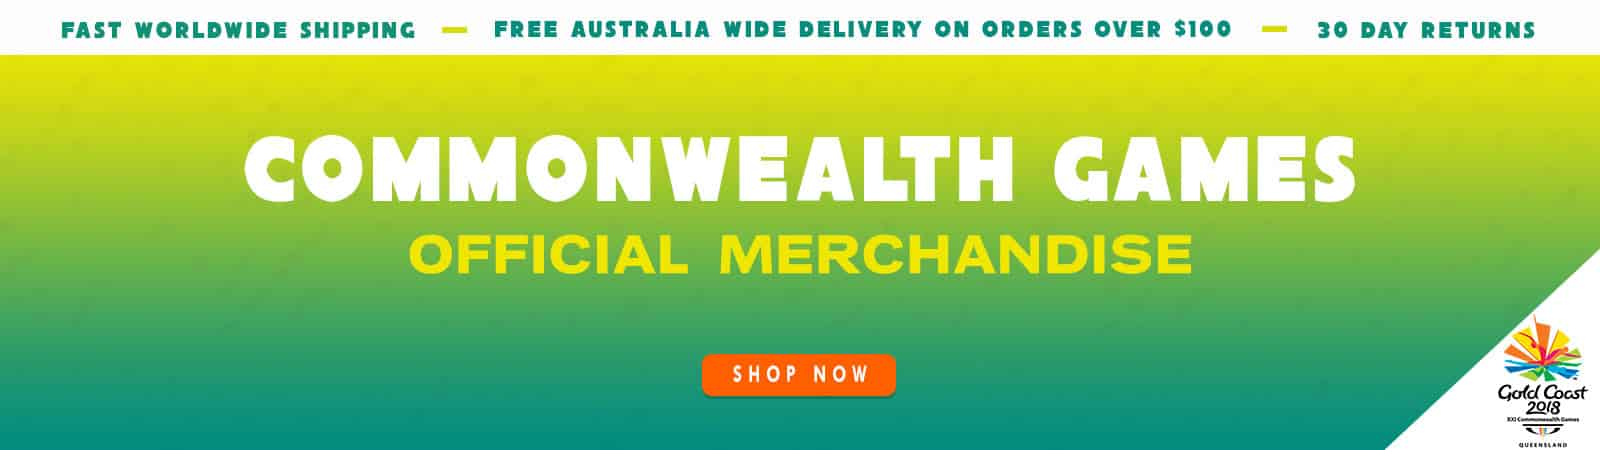 Australia The Gift Souvenirs T Shirts Gifts